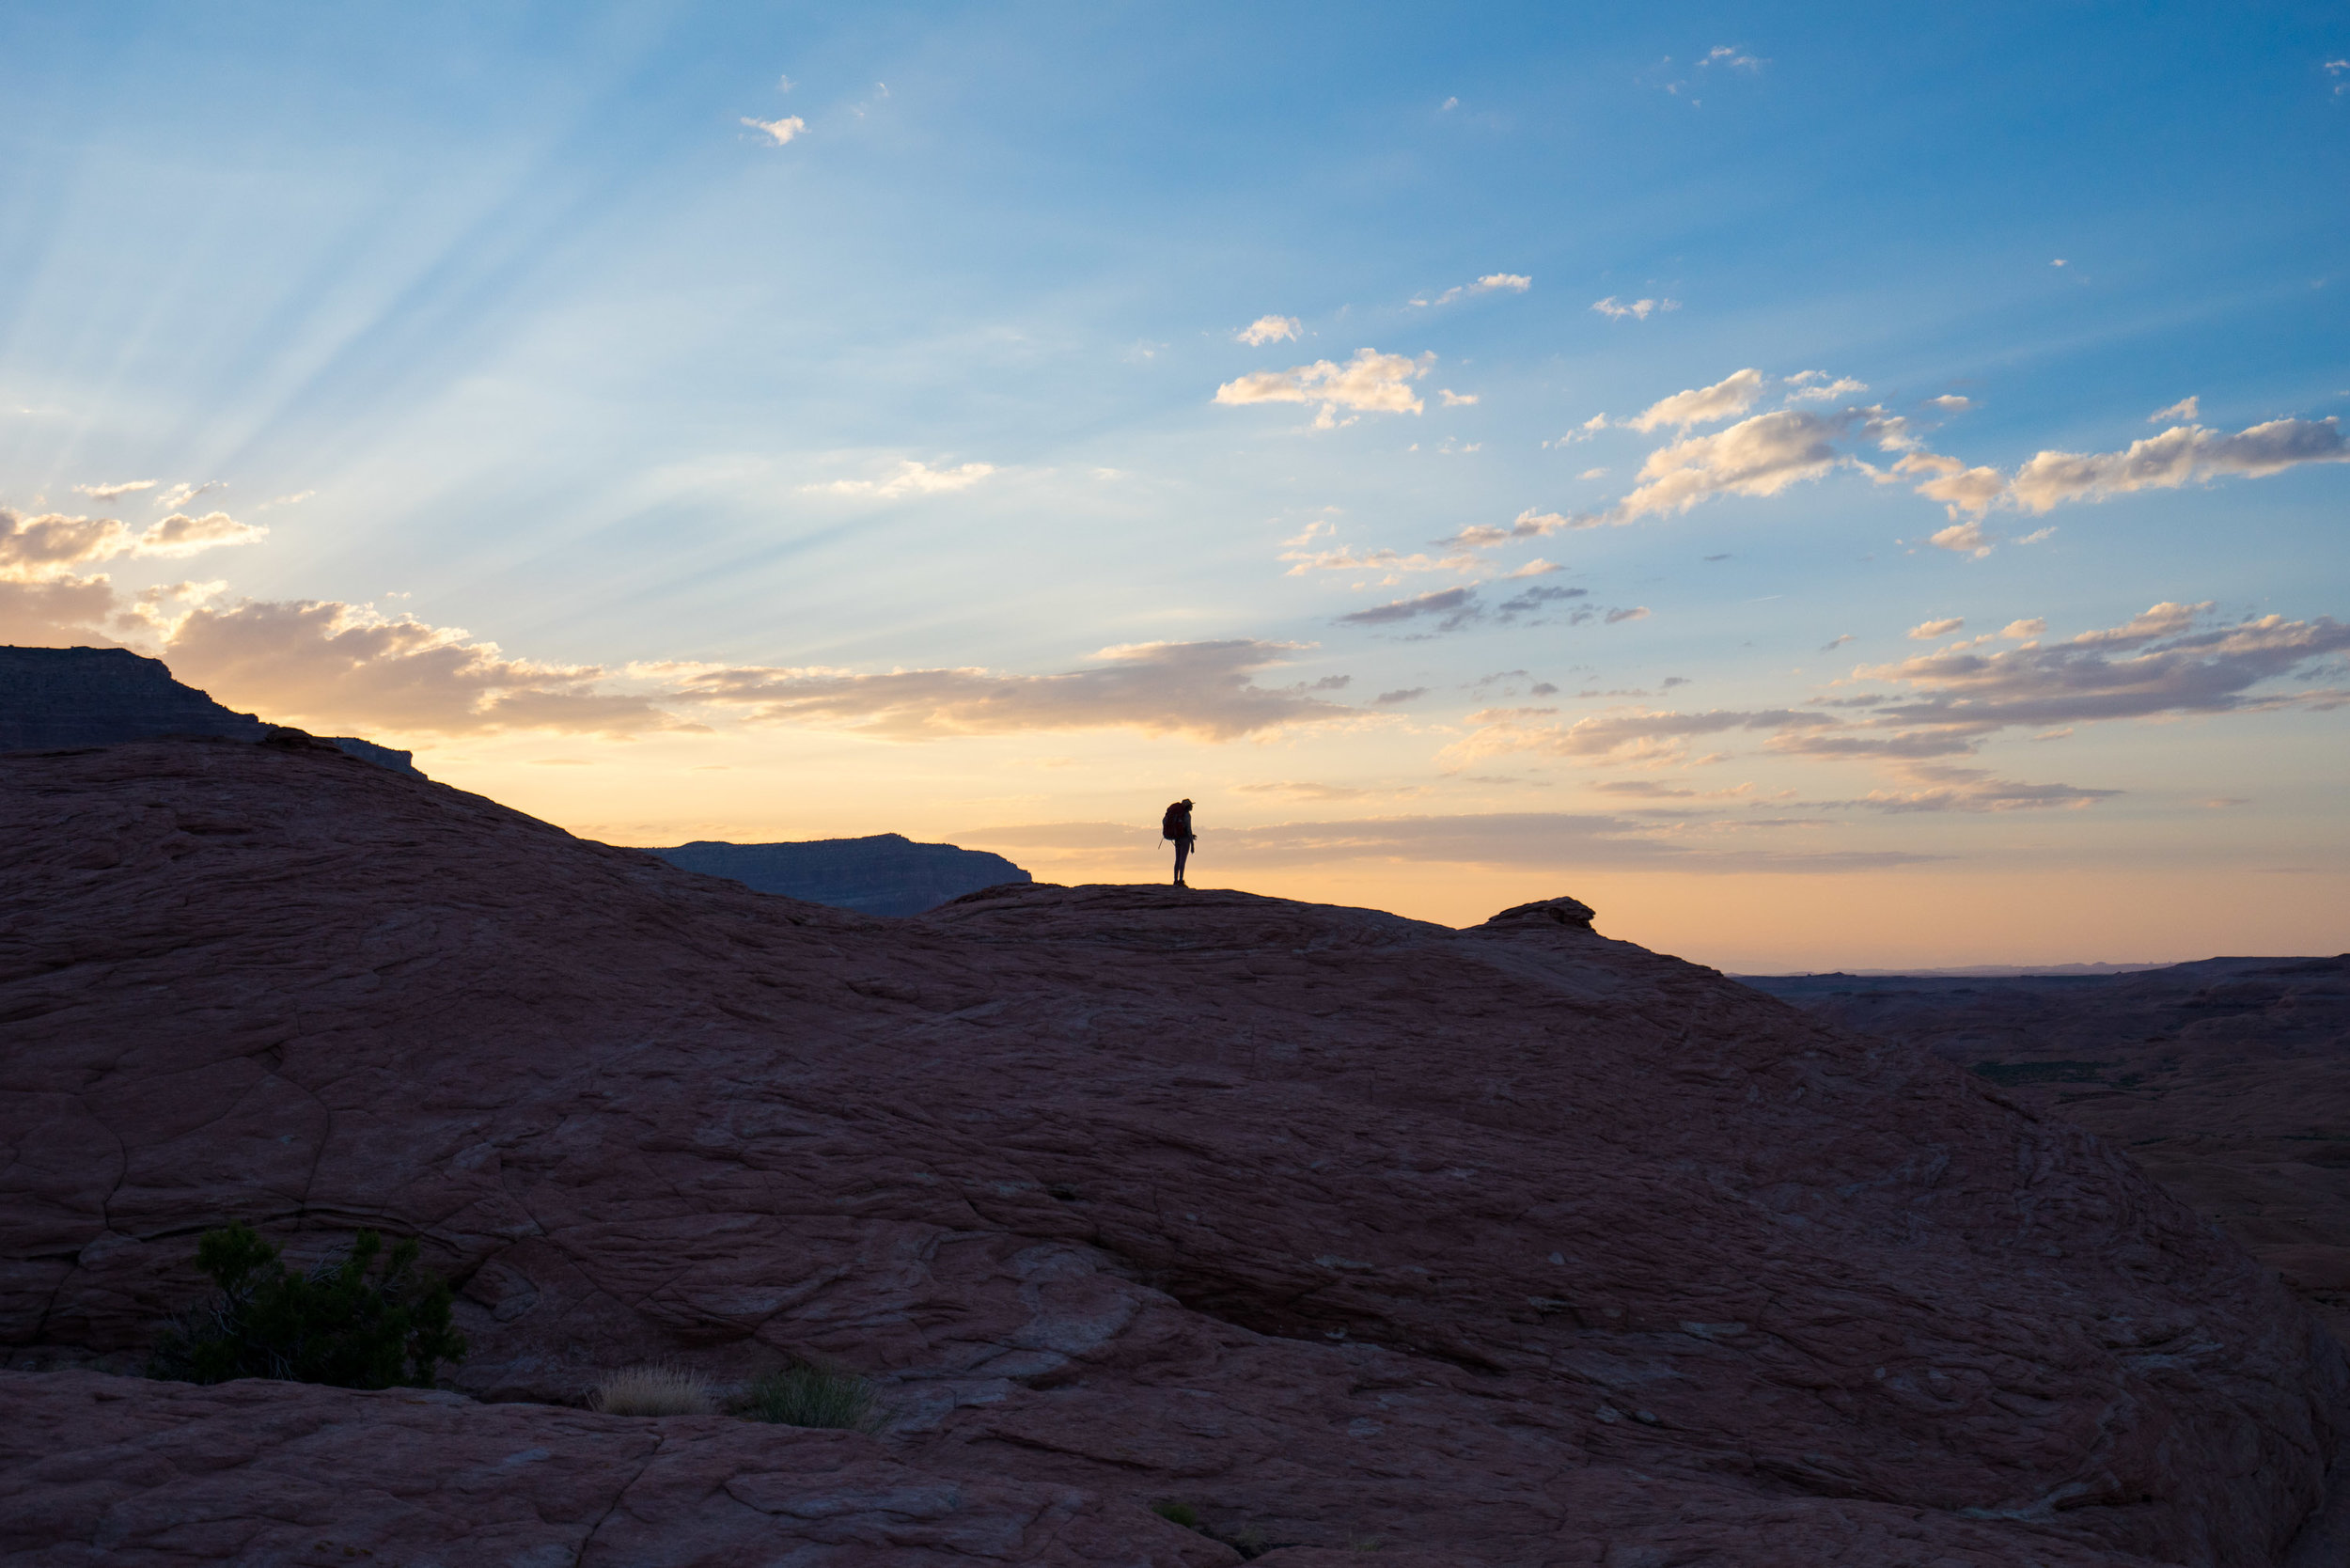 Hiking in the Grand Staircase - Escalante National Monument backcountry